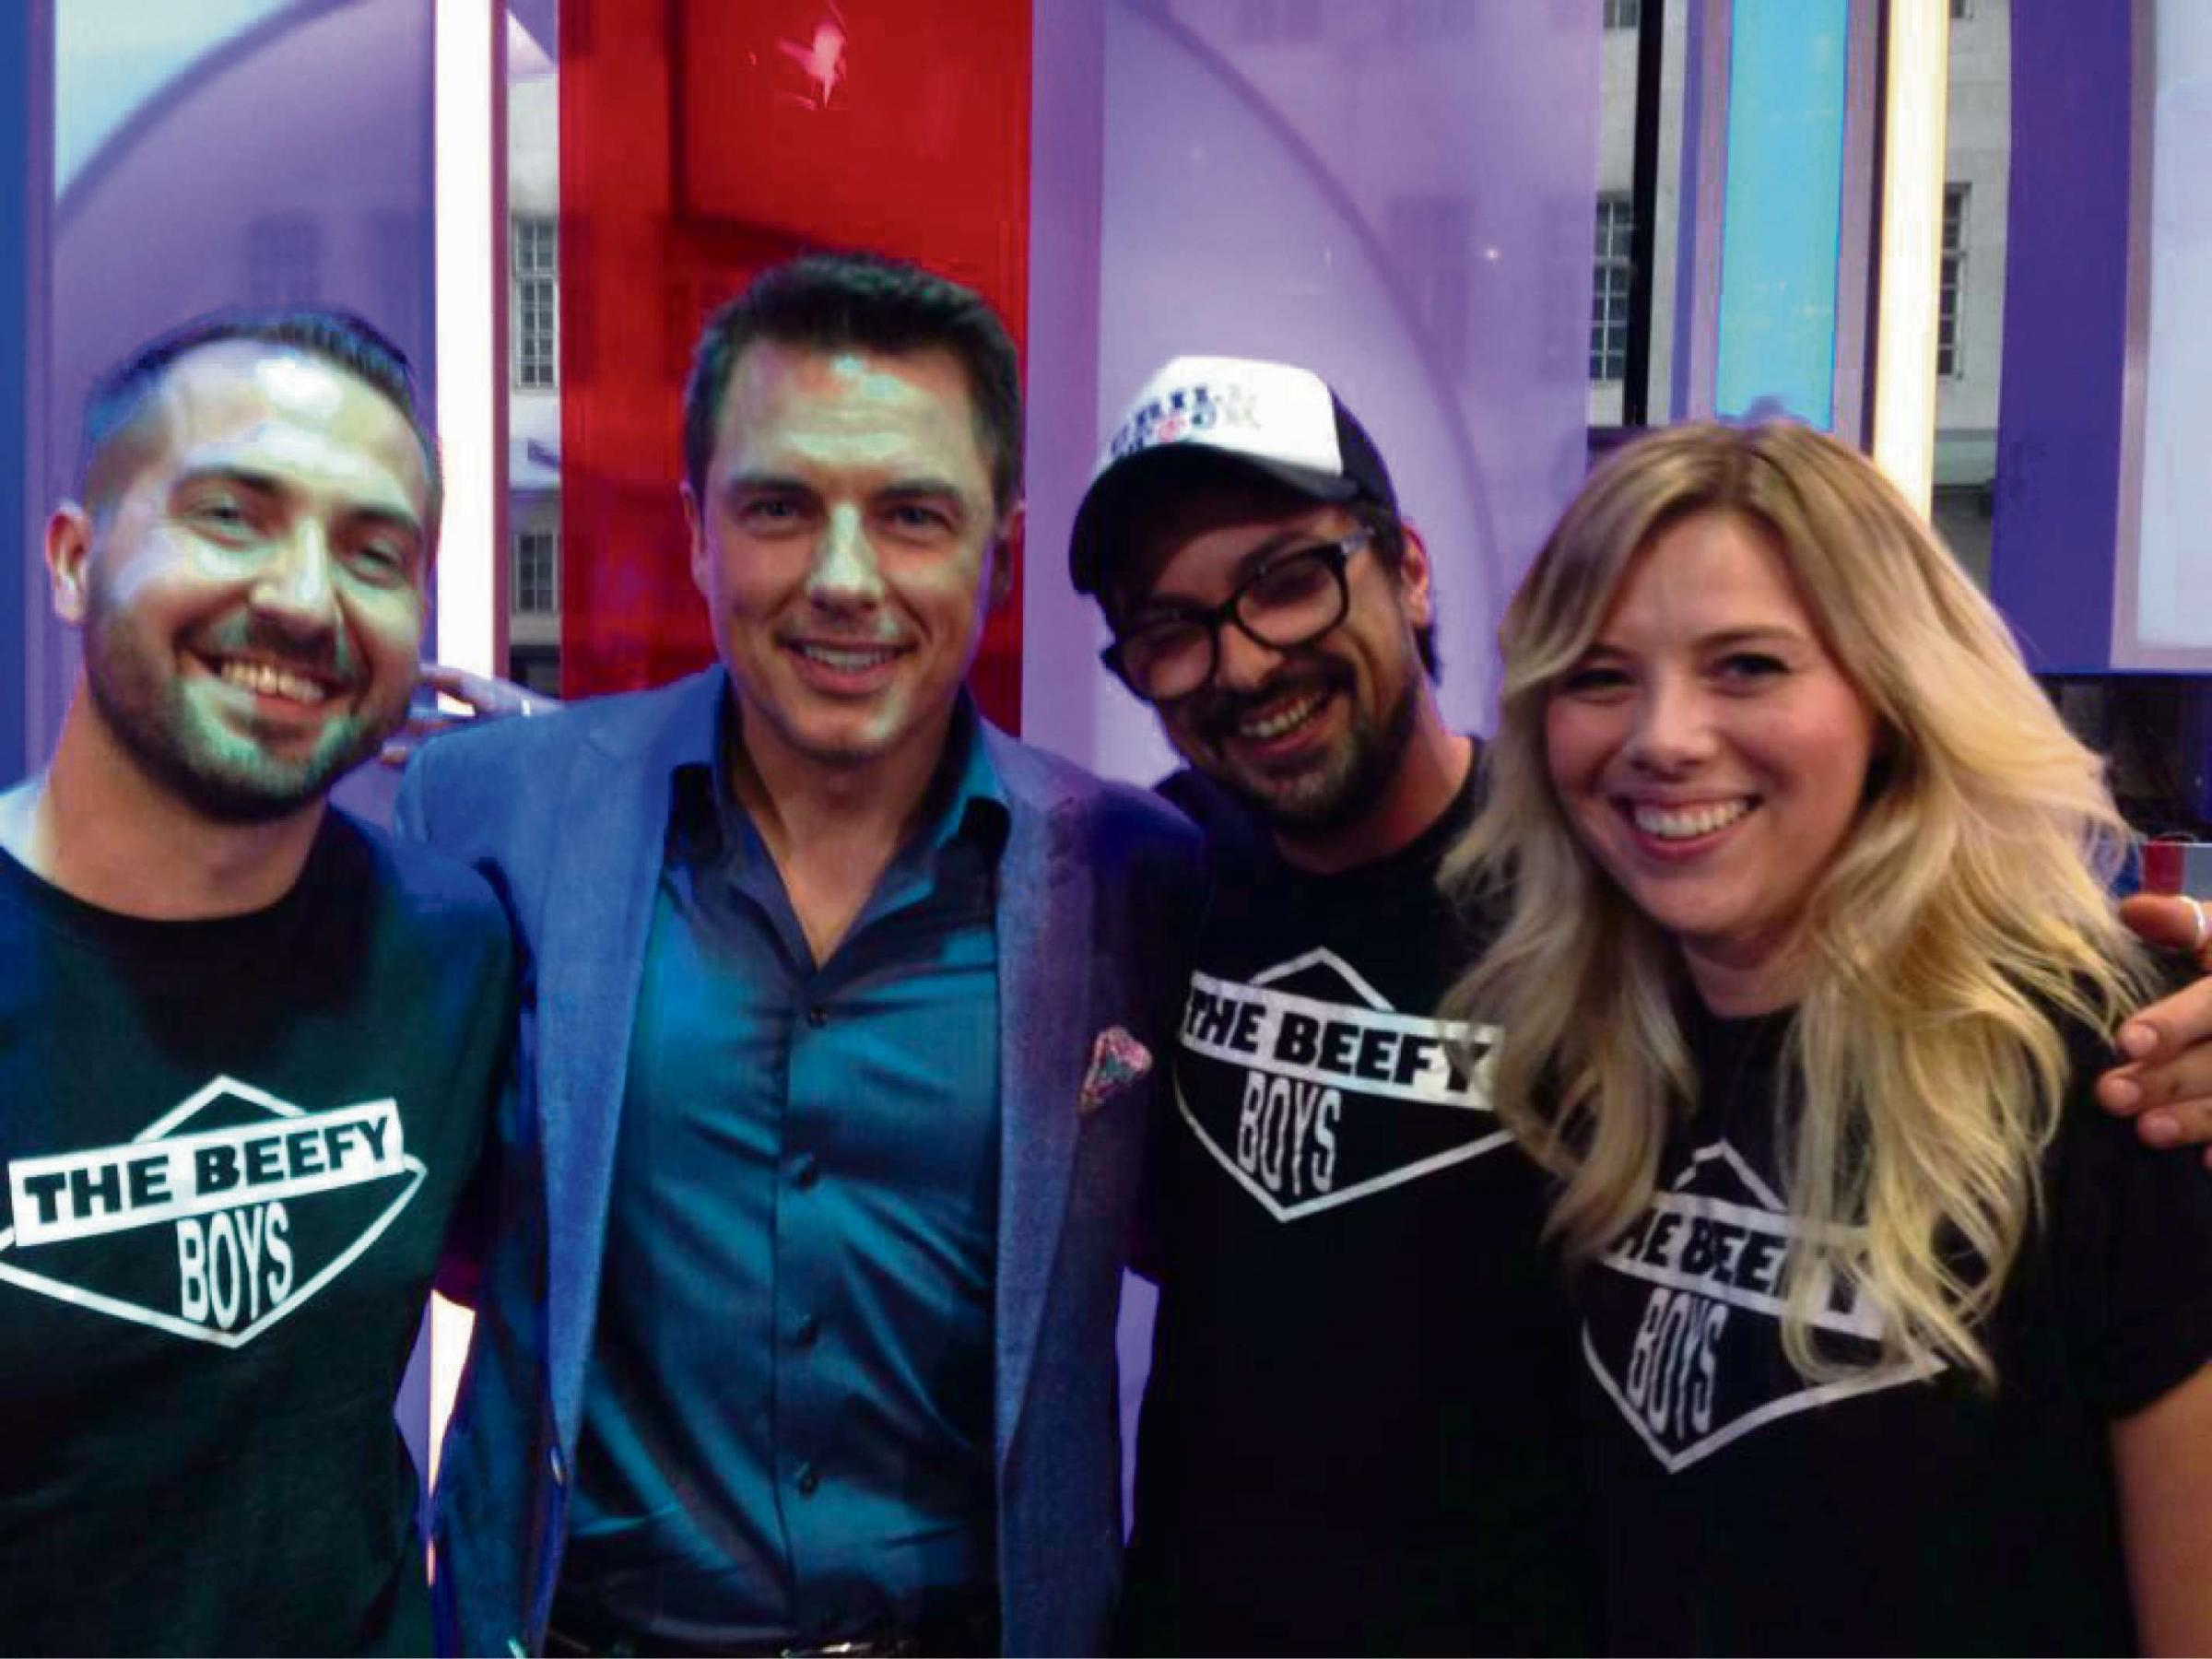 Beefy Boys founders Daniel Mayo-Evans and Anthony Murphy with his partner Jo Marshall on set at The One Show with John Barrowman.